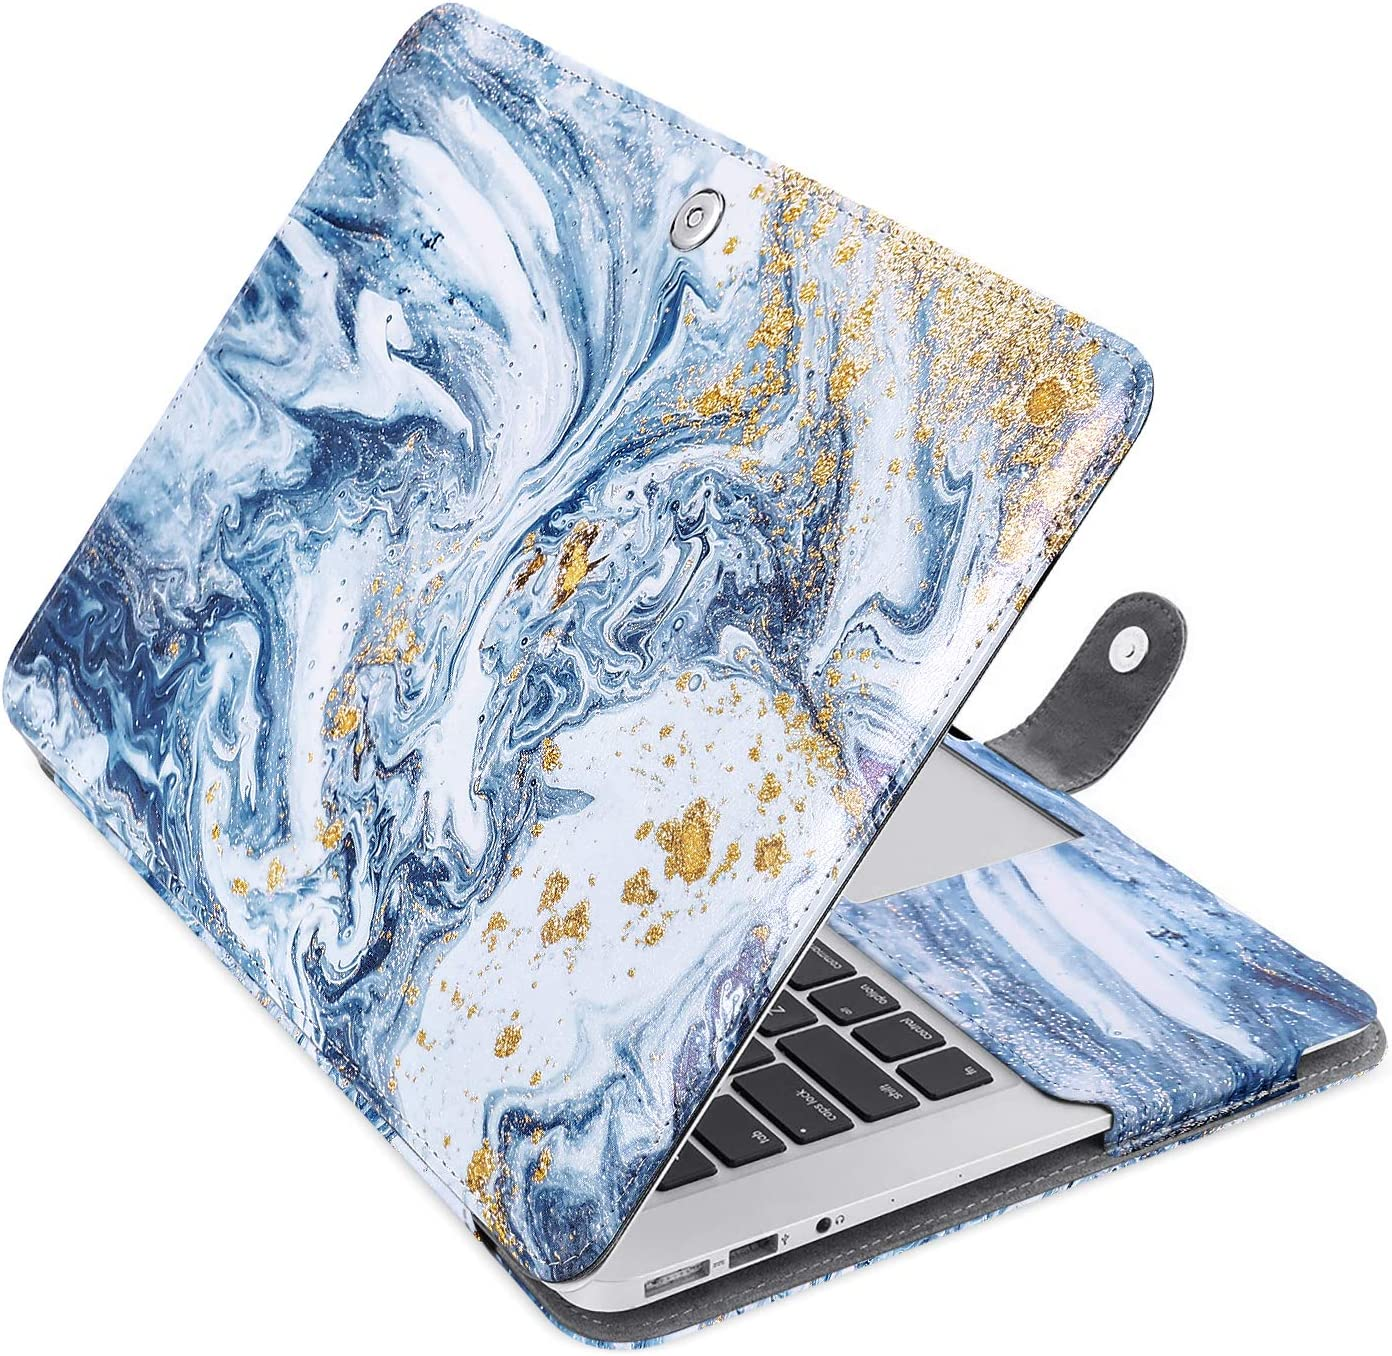 MOSISO MacBook Air 13 inch Case, Pattern PU Leather Book Folio Protective Stand Cover Sleeve Compatible with MacBook Air 13 inch A1466 / A1369 (Older Version Release 2010-2017), Creative Ripple Marble